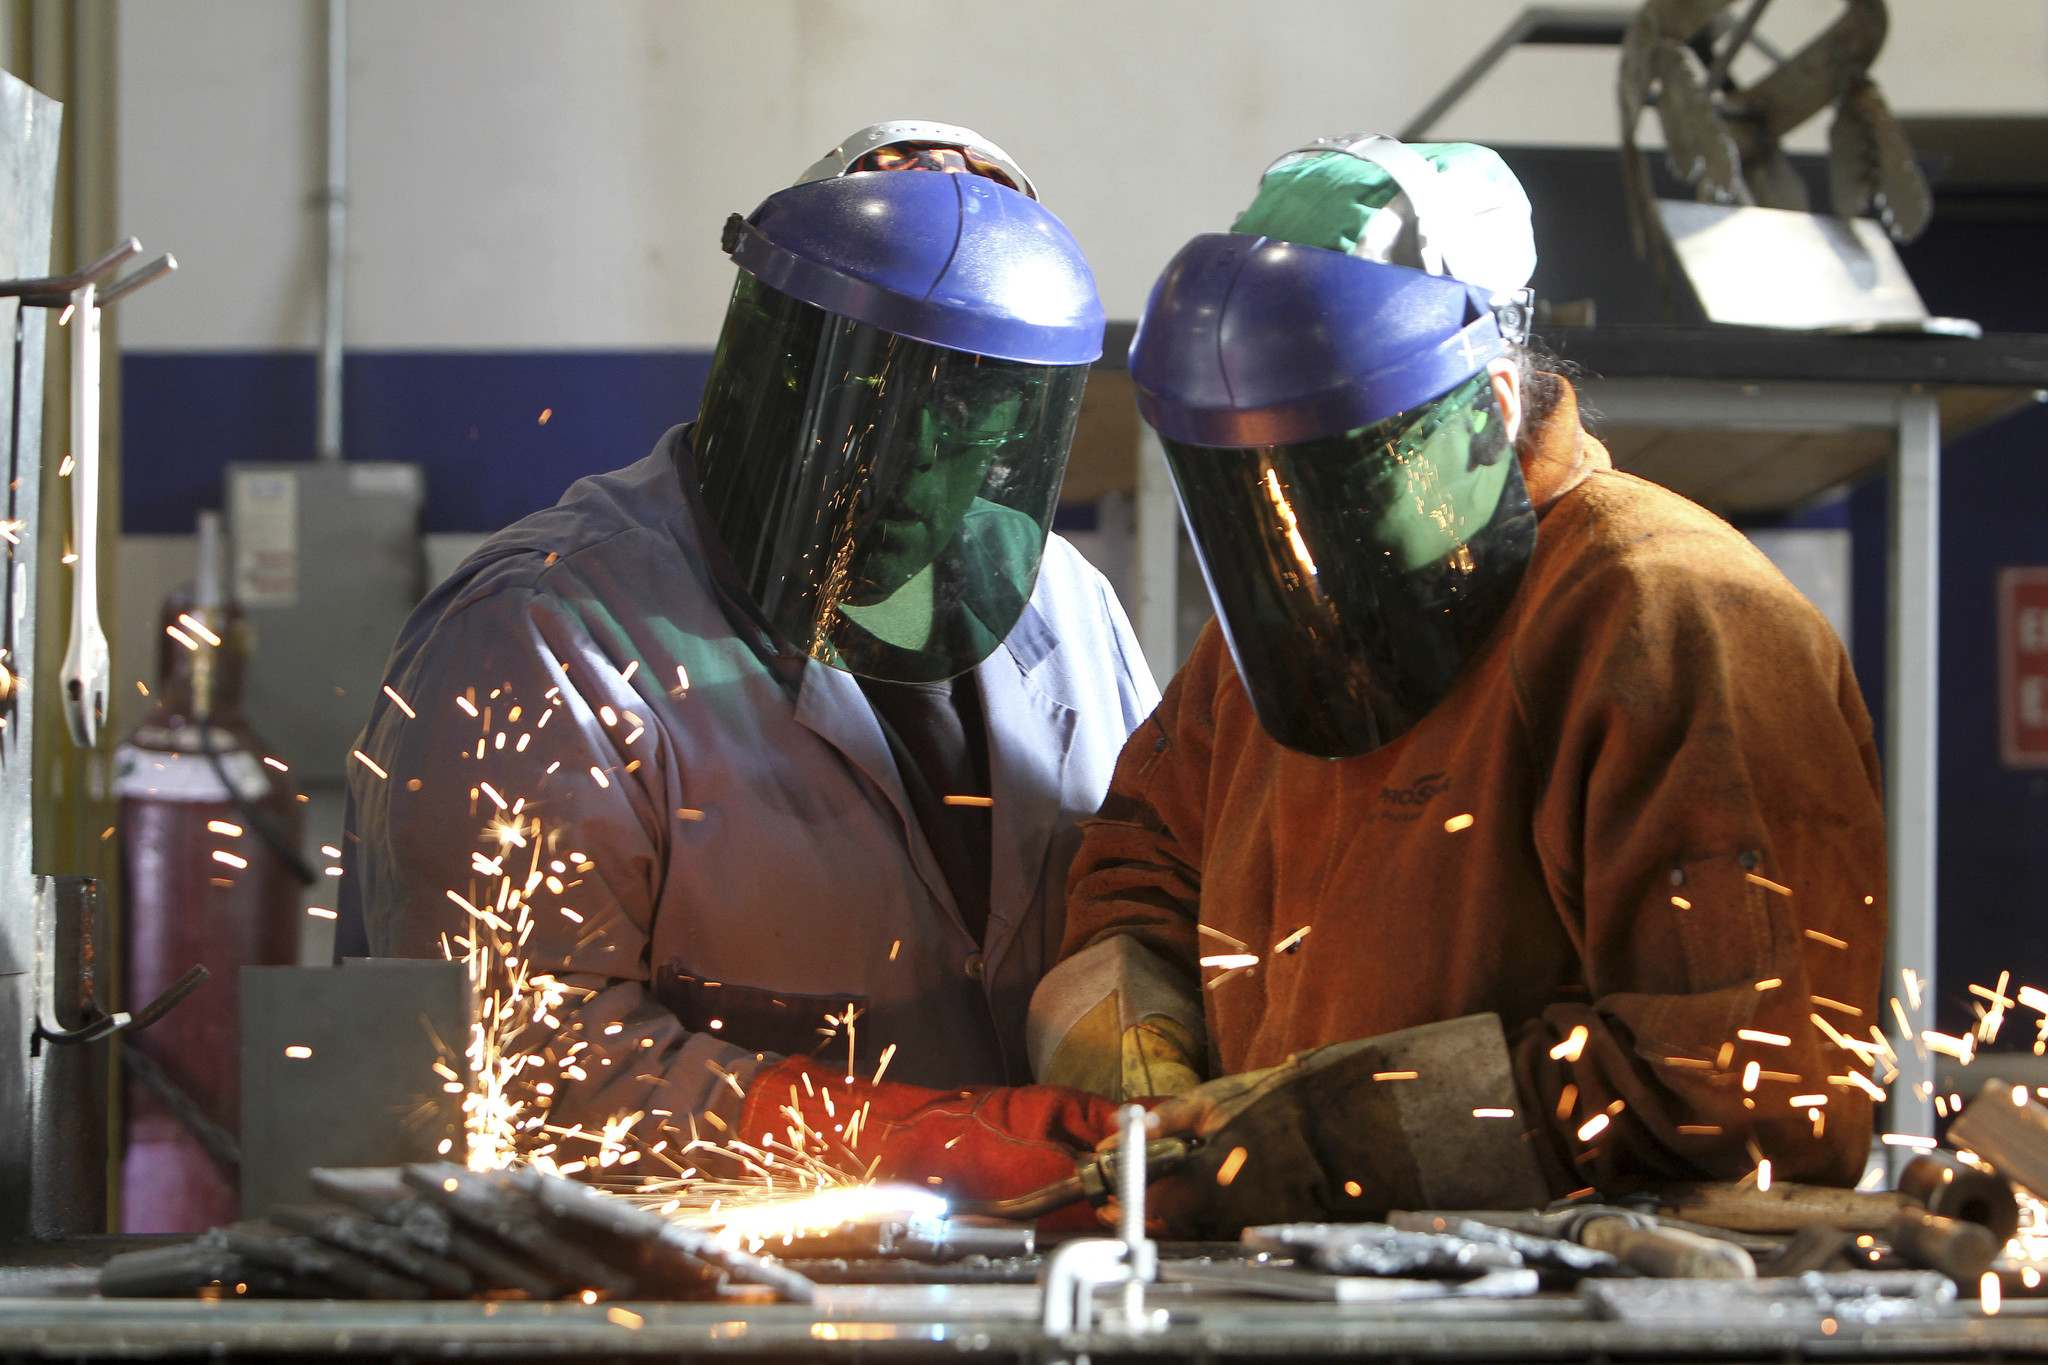 RUTH BONNEVILLE / WINNIPEG FREE PRESS</p></p><p>Hilary Forbes, right, learns to weld with the direction of welding instructor Ted Taylor at the Neeginan College of Applied Technology in the welding class. The welding class is ibeside Neeginan Centre and part of CAHRD (Centre for Aboriginal Human Resource Development Inc.)</p>